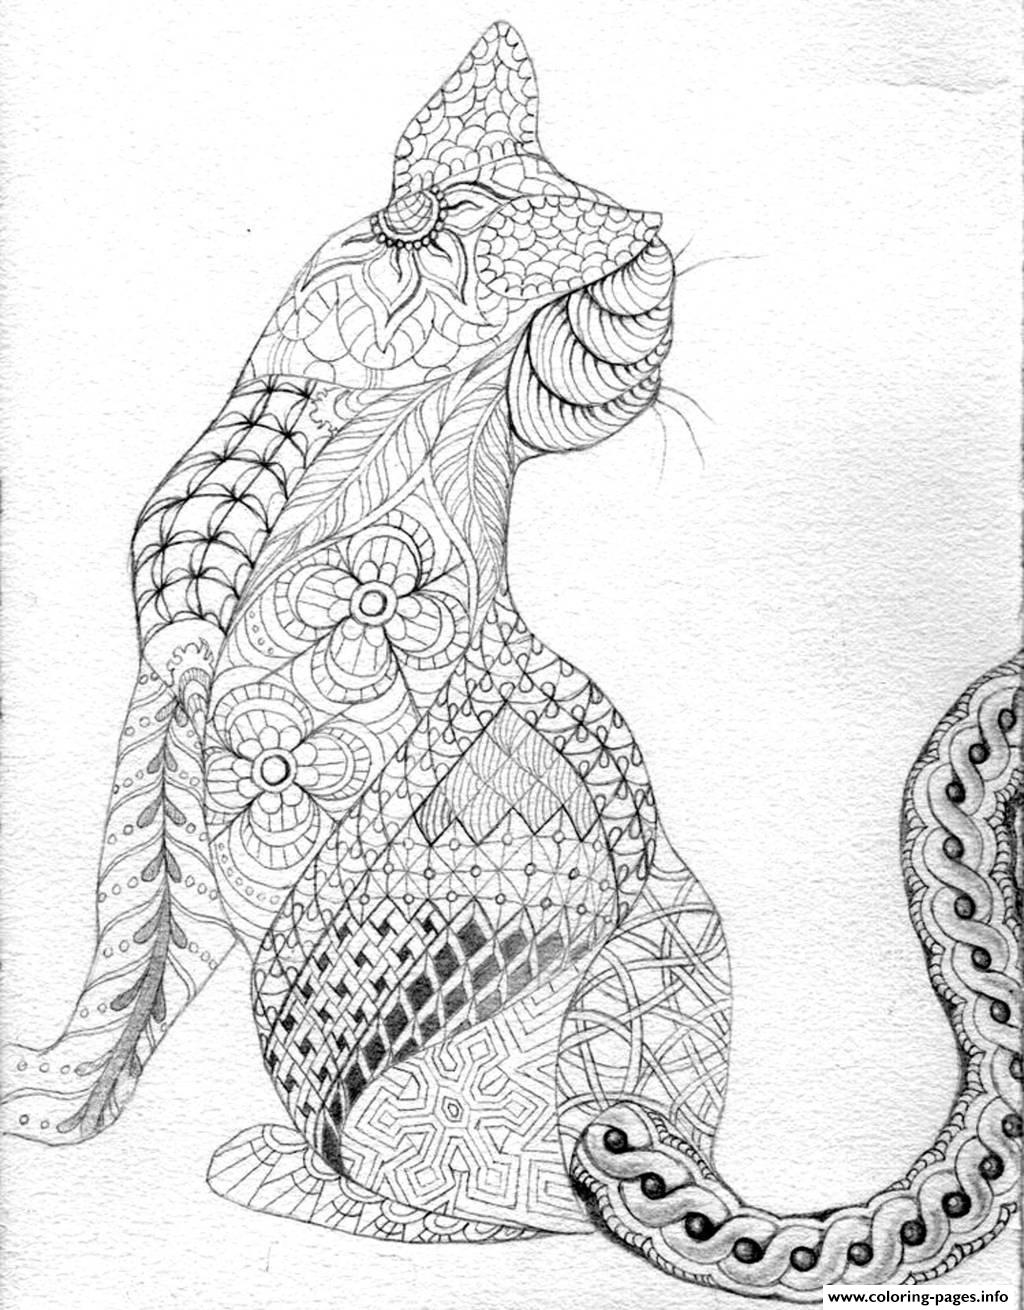 hard cat design coloring pages - photo#15